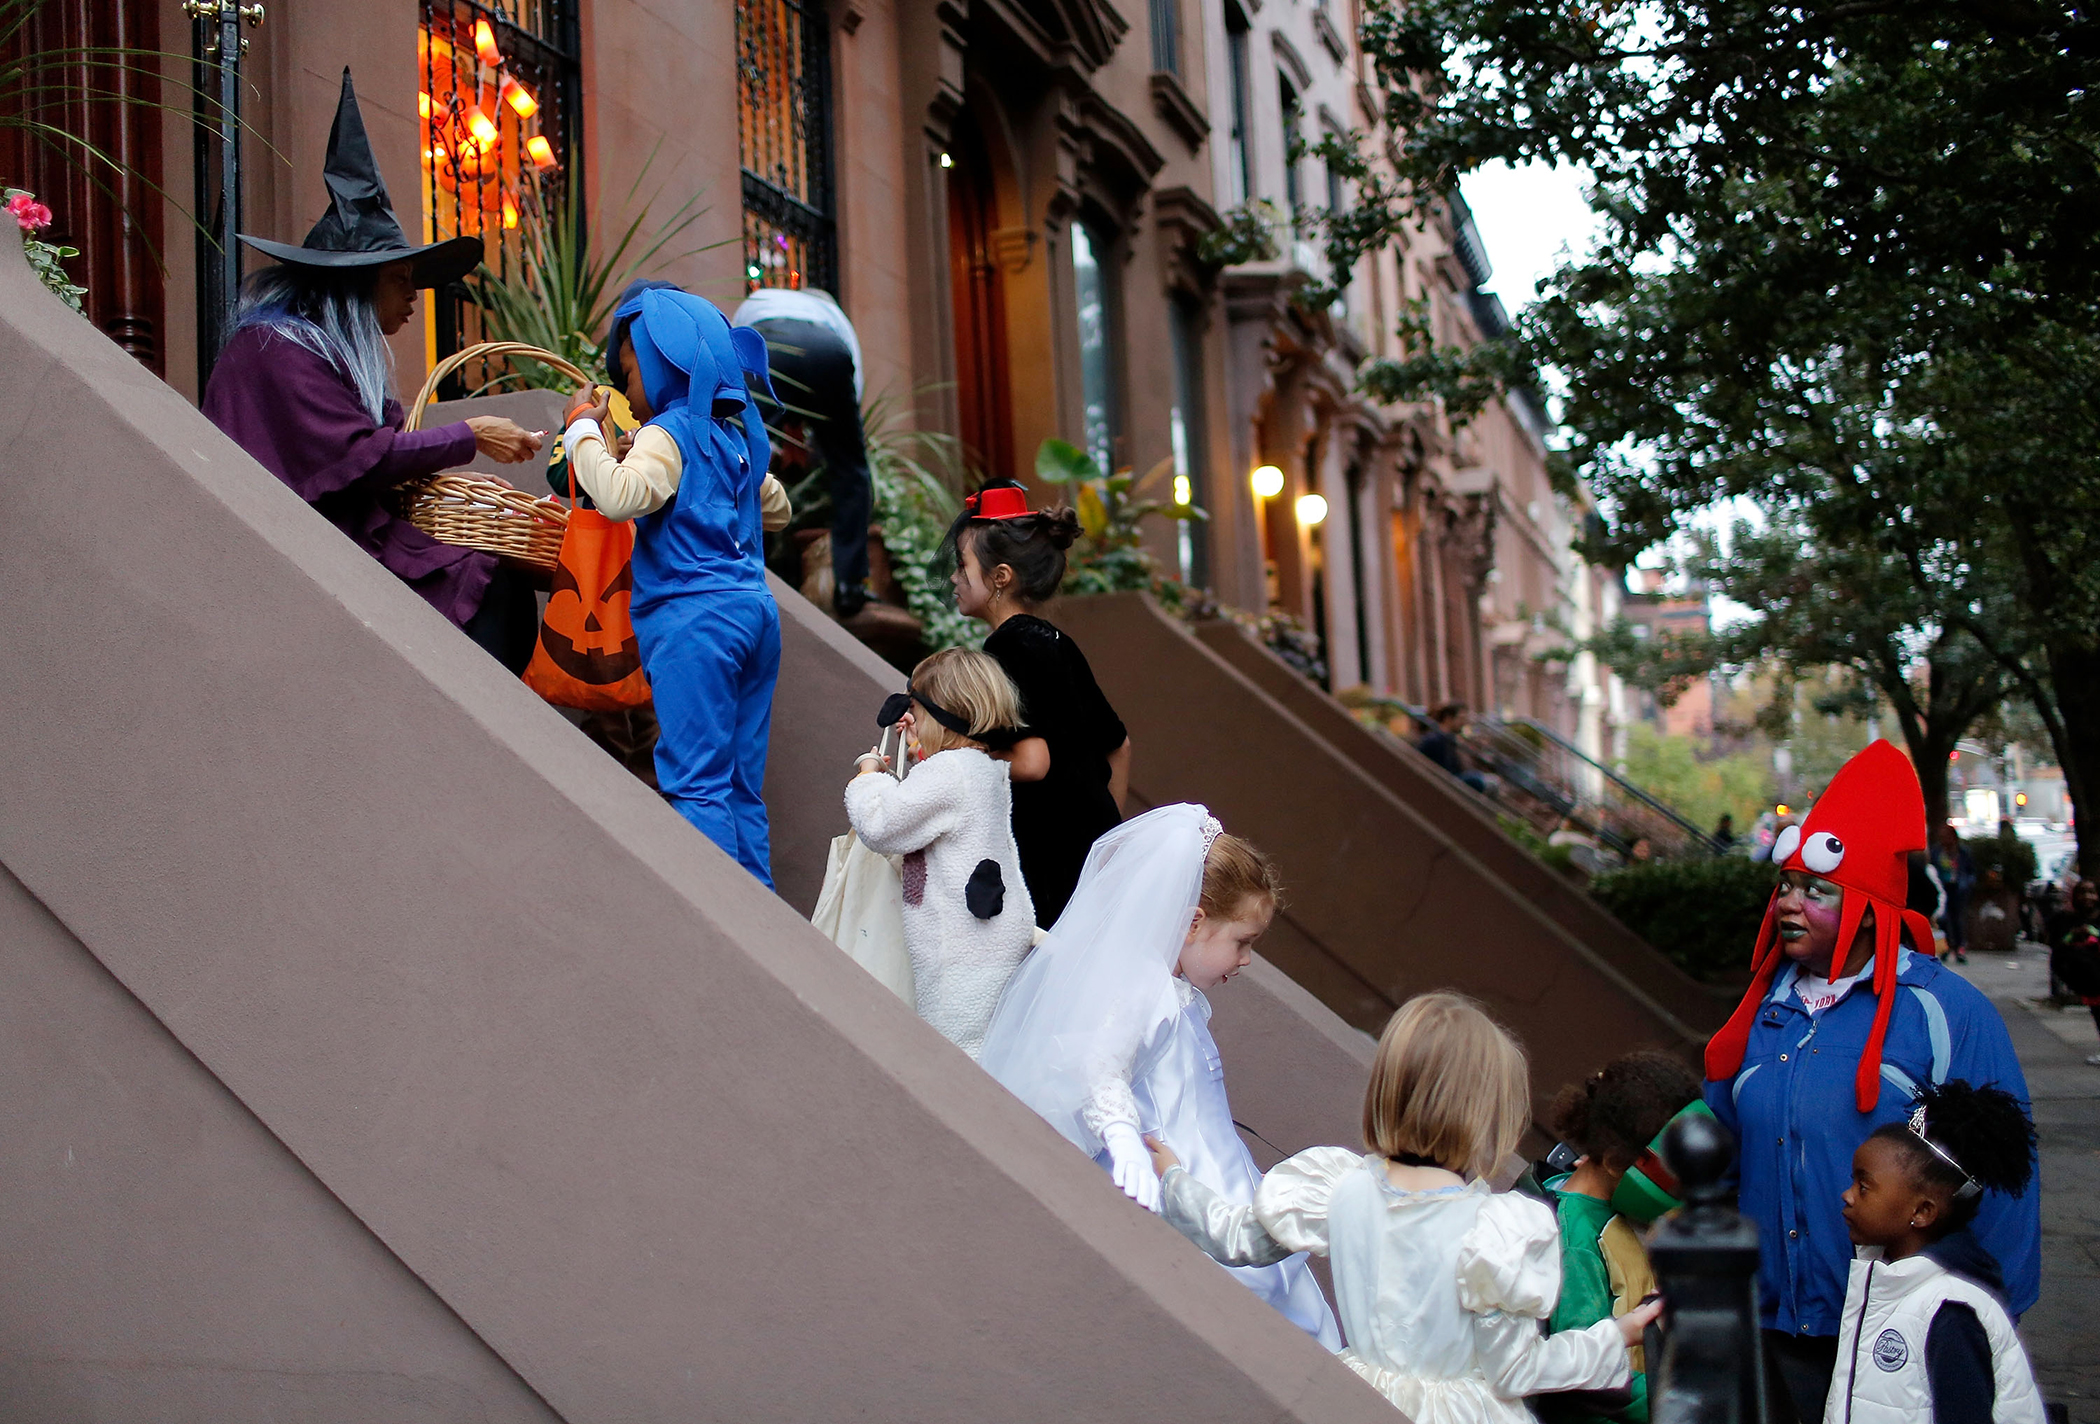 Linda Vital (L) passes out candy to halloween revelers as they stop at a private residence on Greene St. in Clinton Hill, Brooklyn to  Trick or Treat  in Clinton Hill, Brooklyn on October 31, 2013 in New York City.